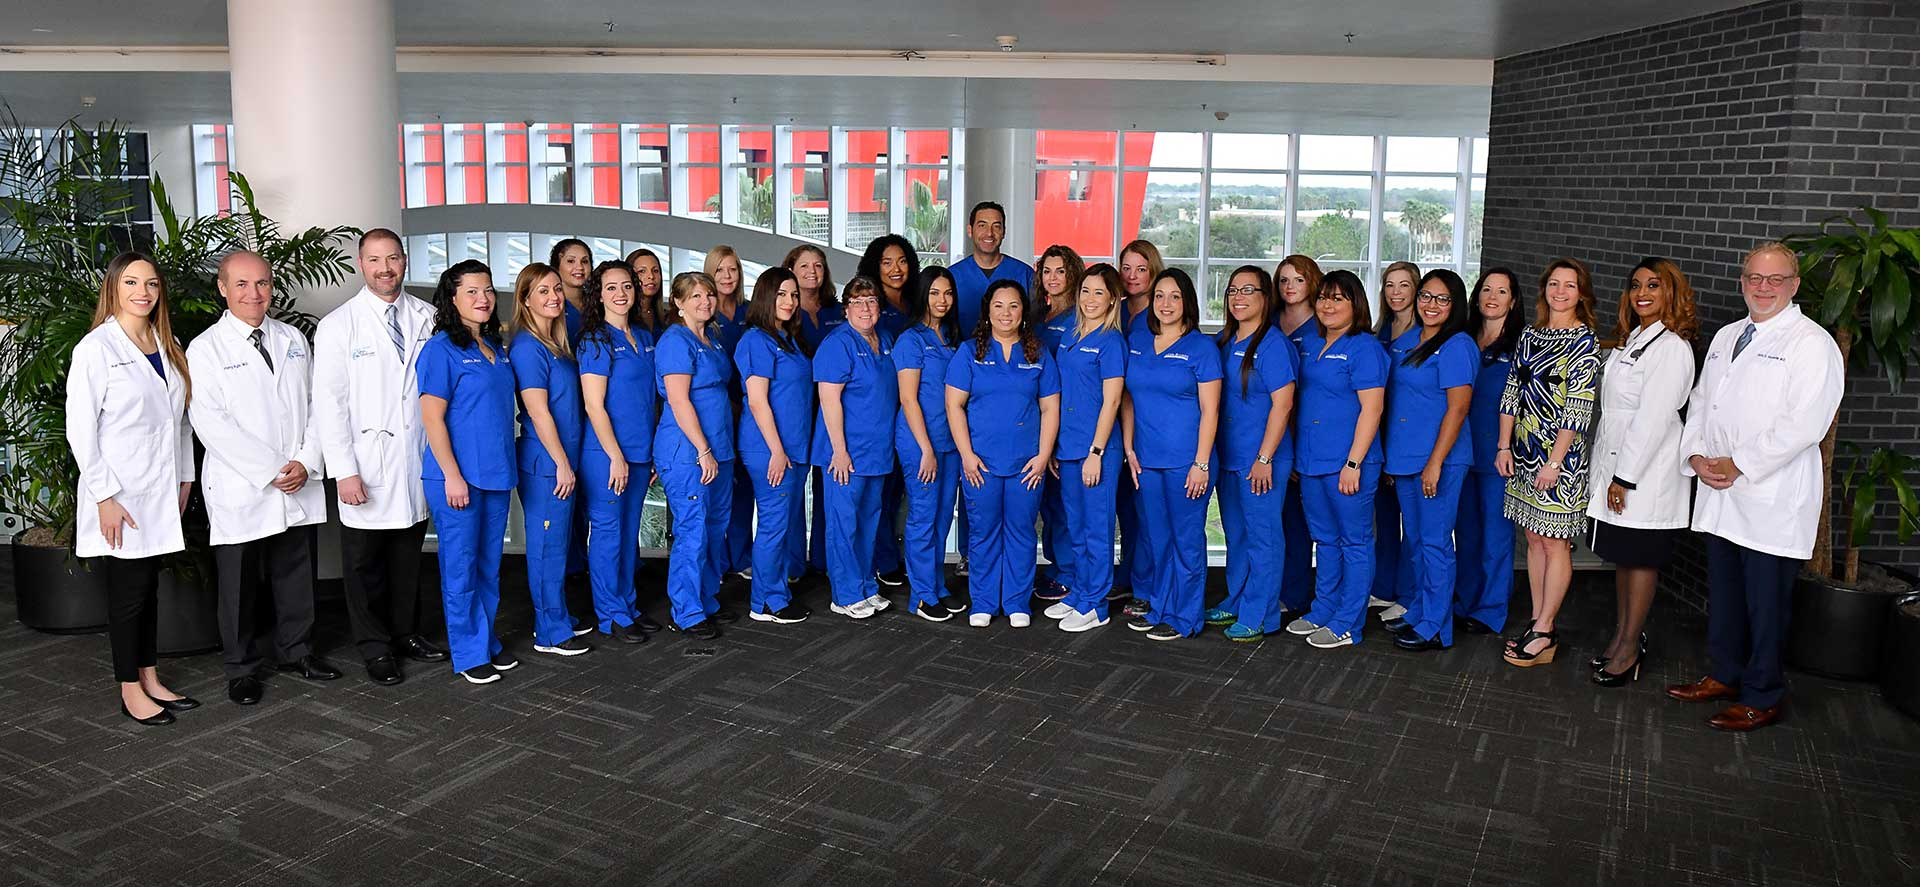 Expert medical staff with nurses, doctors and surgeons from Central Florida Vein & Vascular.